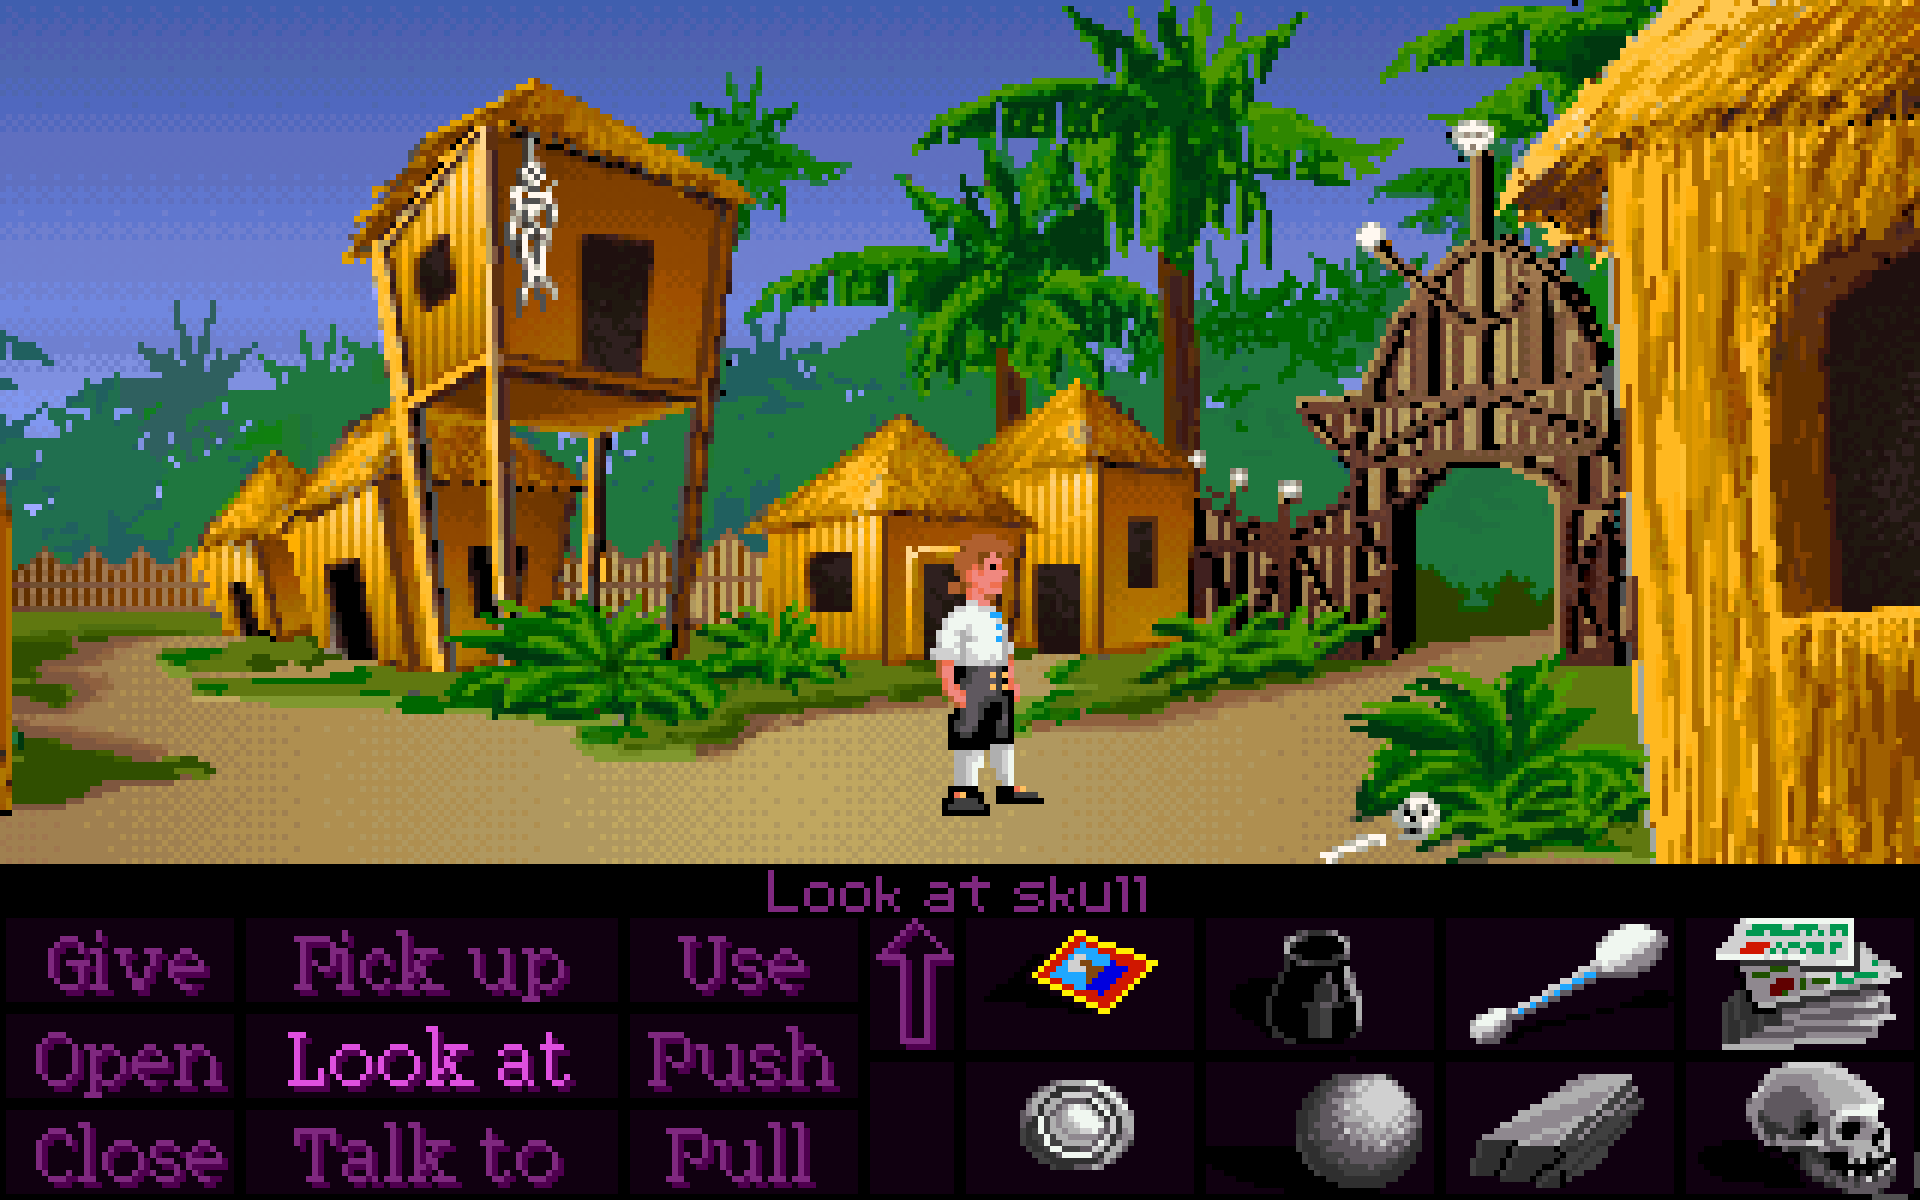 SCUMM-based screenshot from Moby Games of Monkey Island's in-game funsies.